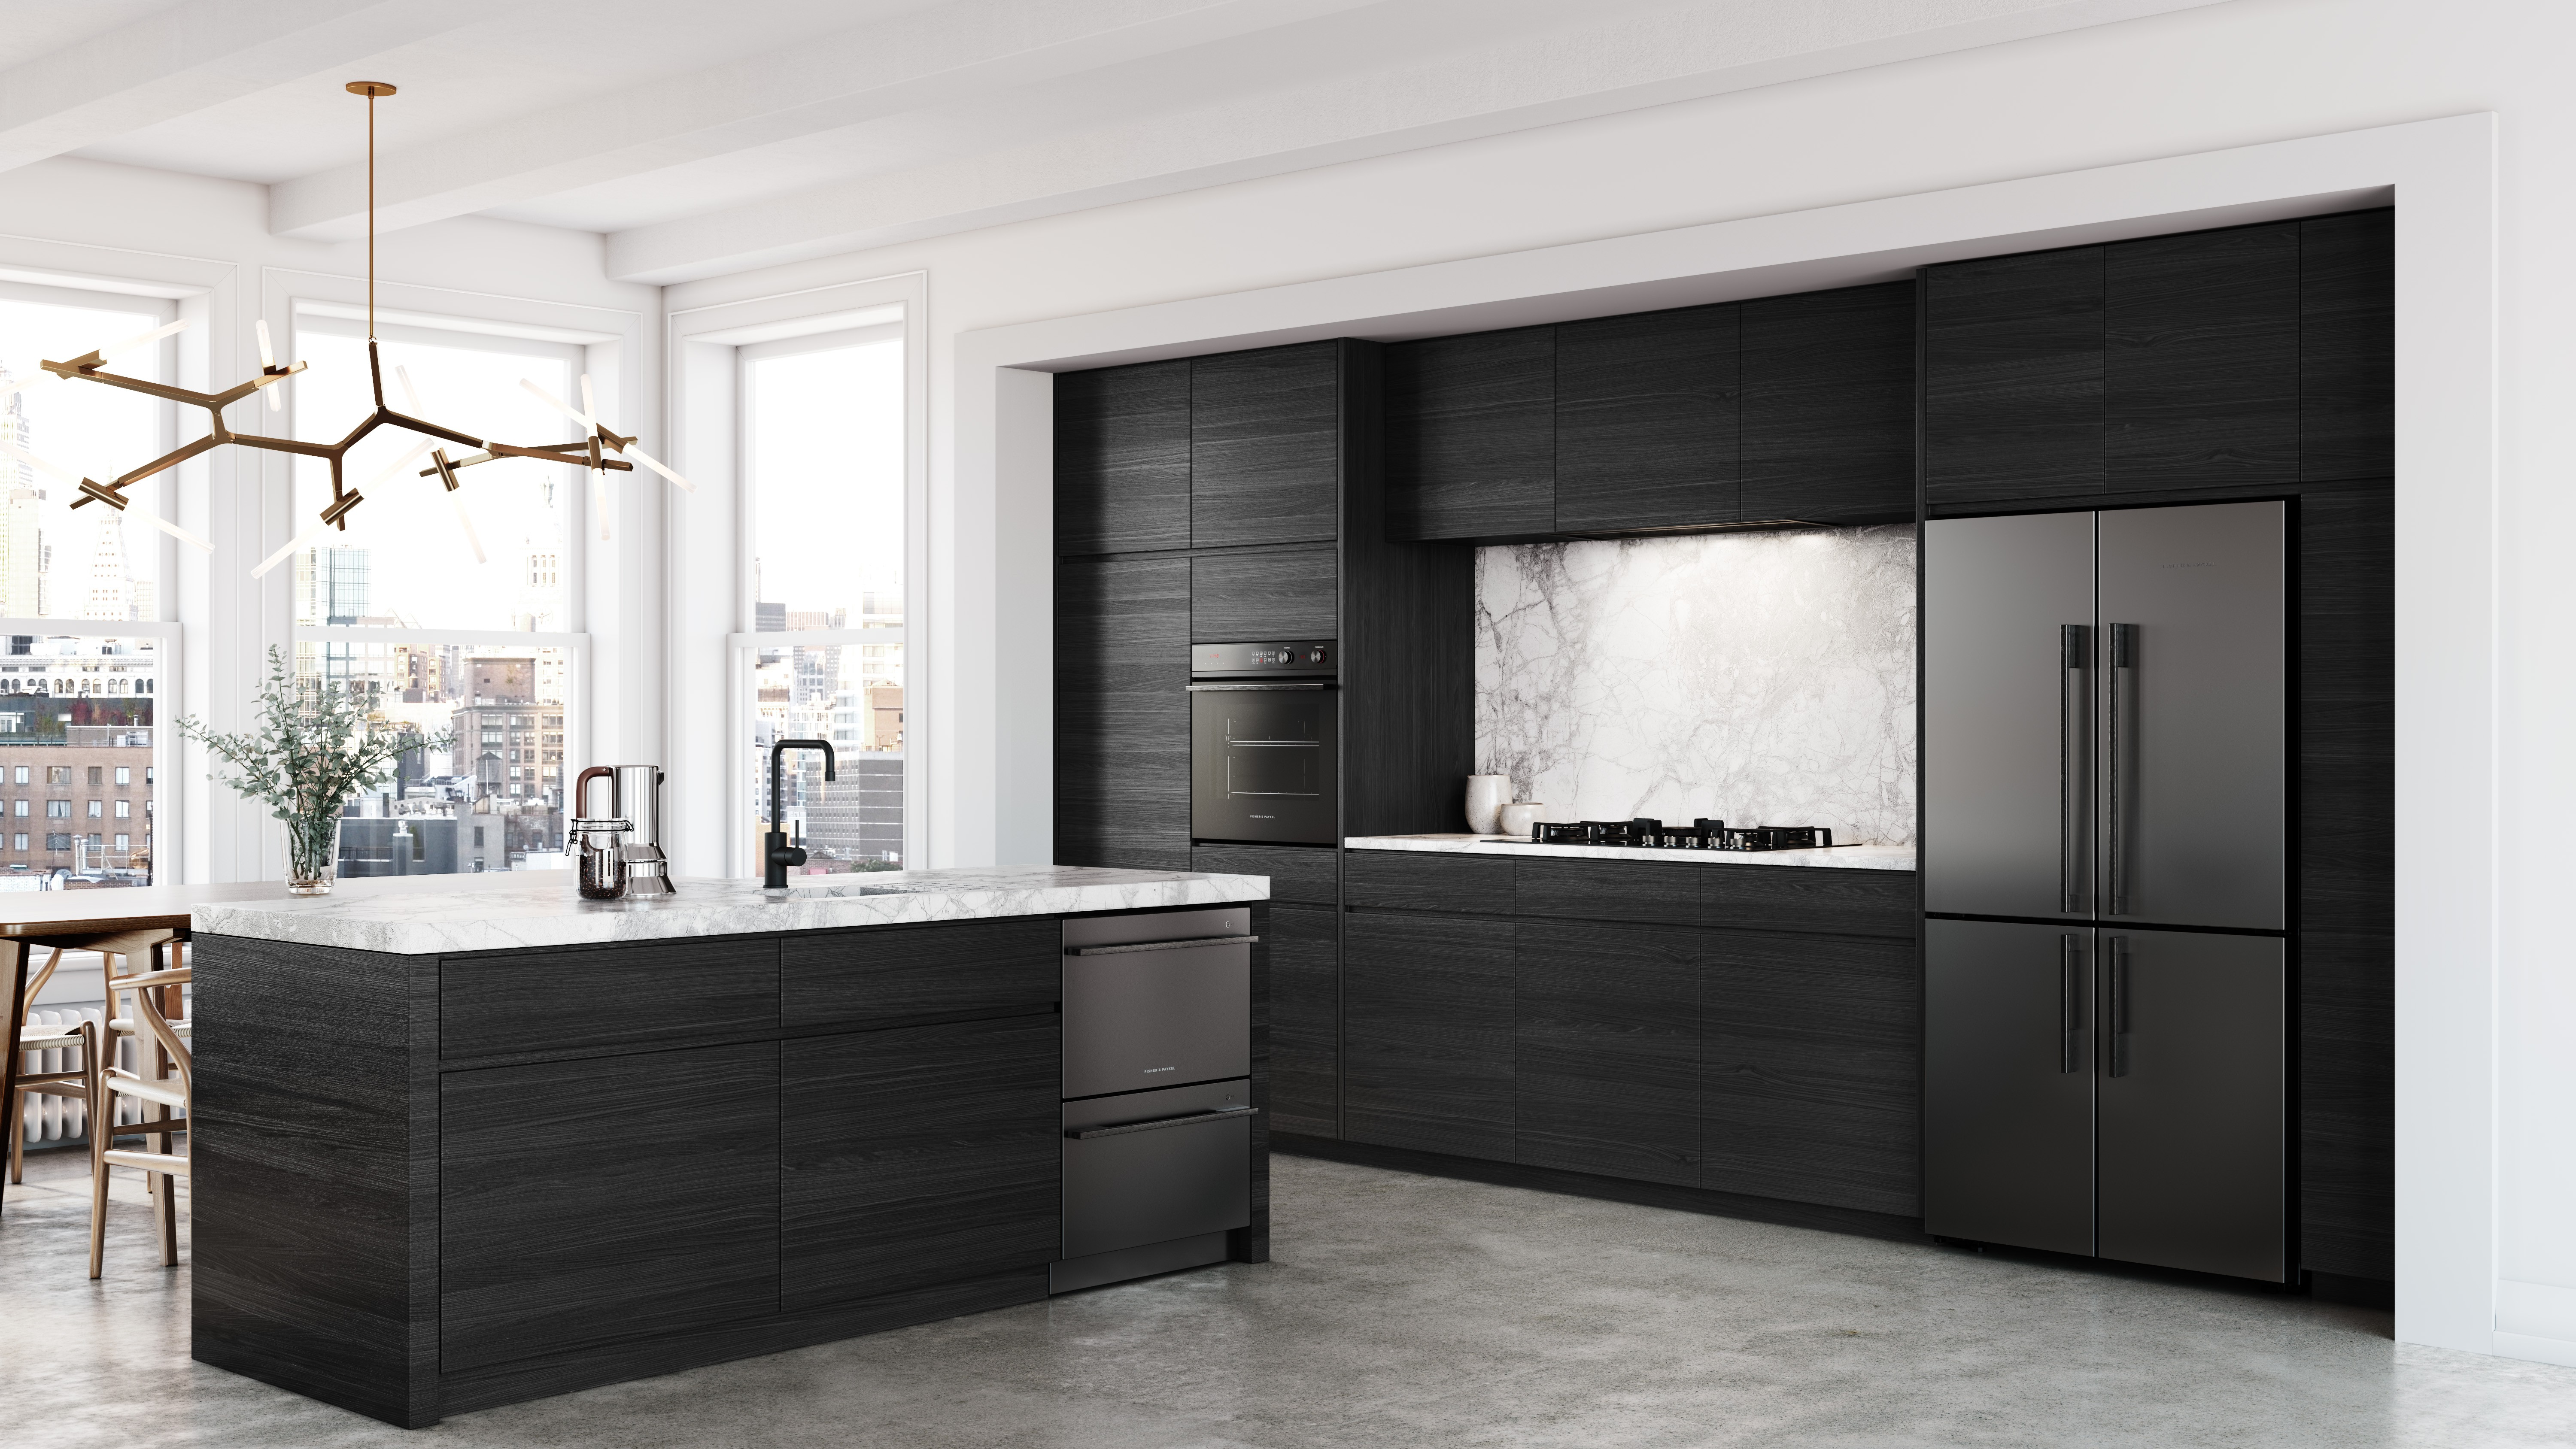 FISHER & PAYKEL | GET A FREE DISHDRAWER OR UPGRADE & SAVE!